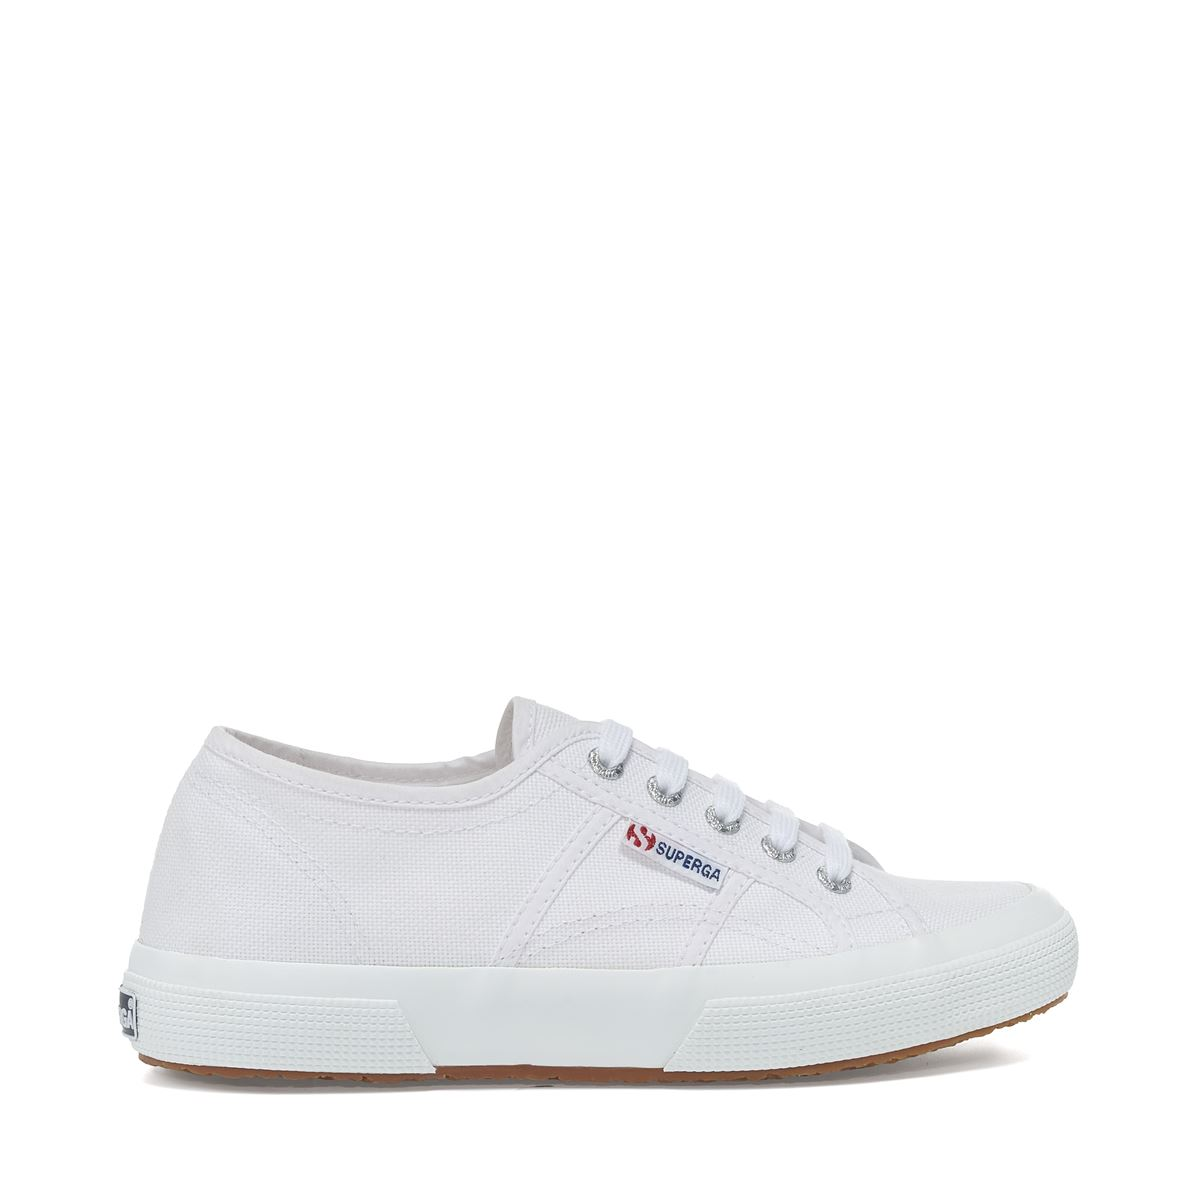 Italian Le Superga Superga for men and women-S003J70